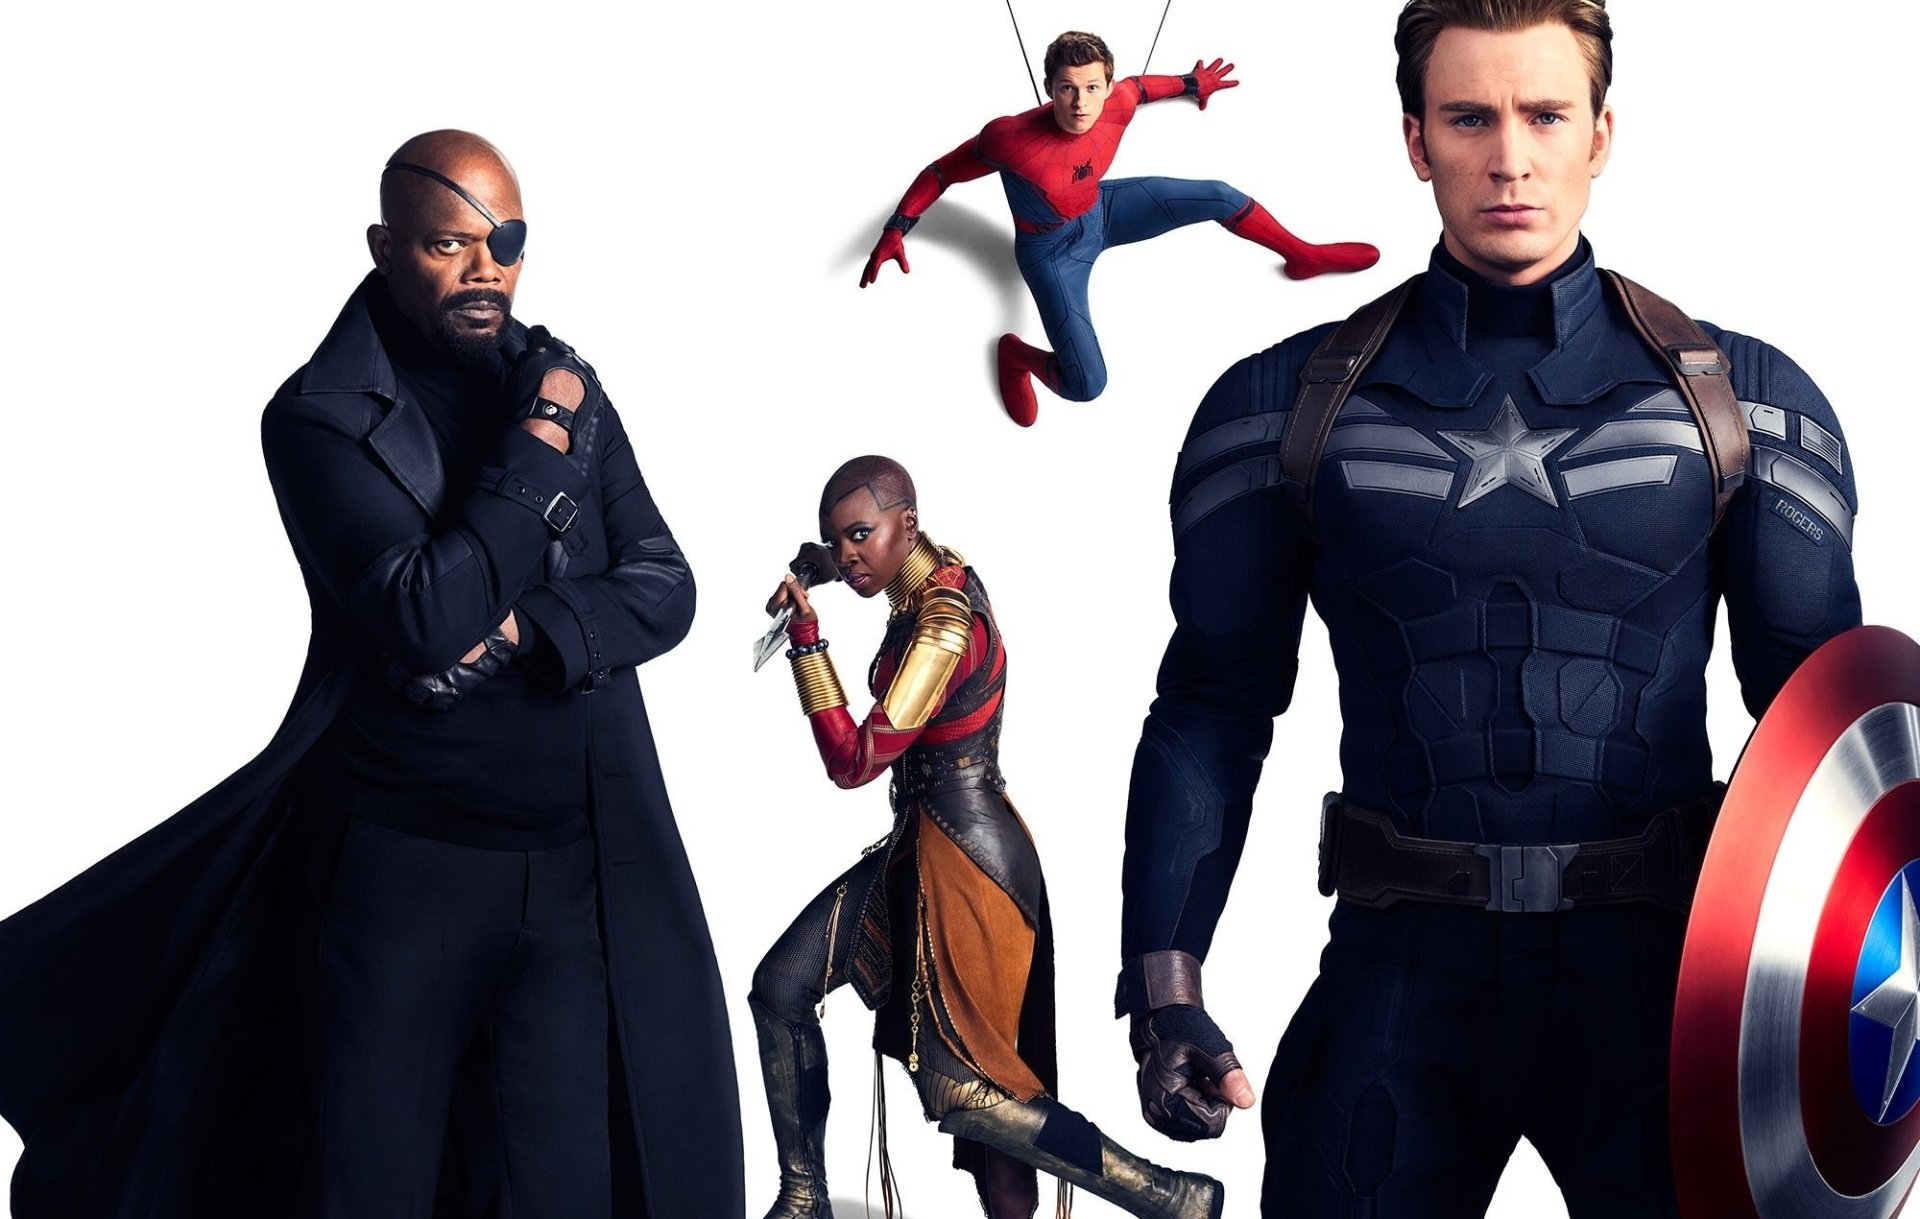 电影 - 复仇者联盟3:无限战争  美国队长 Chris Evans 蜘蛛侠 Tom Holland Danai Gurira Okoye (Marvel Comics) Nick Fury Samuel L. Jackson 壁纸